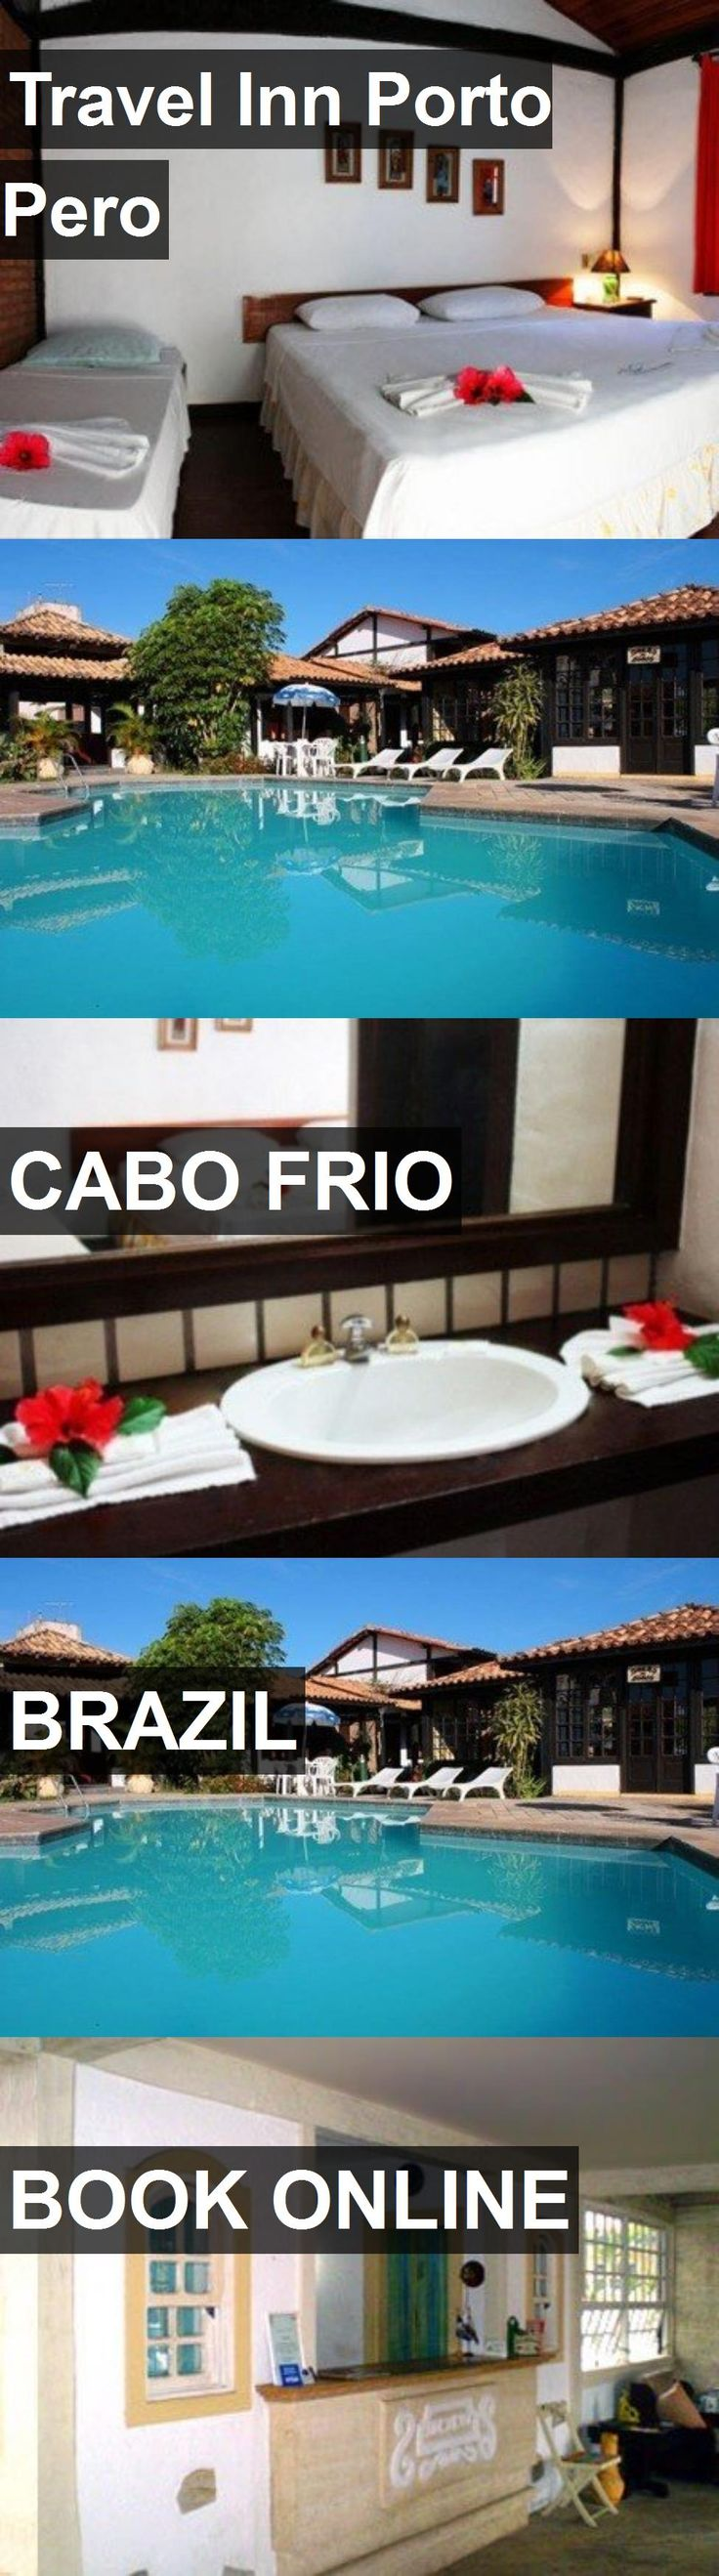 Hotel Travel Inn Porto Pero in Cabo Frio, Brazil. For more information, photos, reviews and best prices please follow the link. #Brazil #CaboFrio #TravelInnPortoPero #hotel #travel #vacation